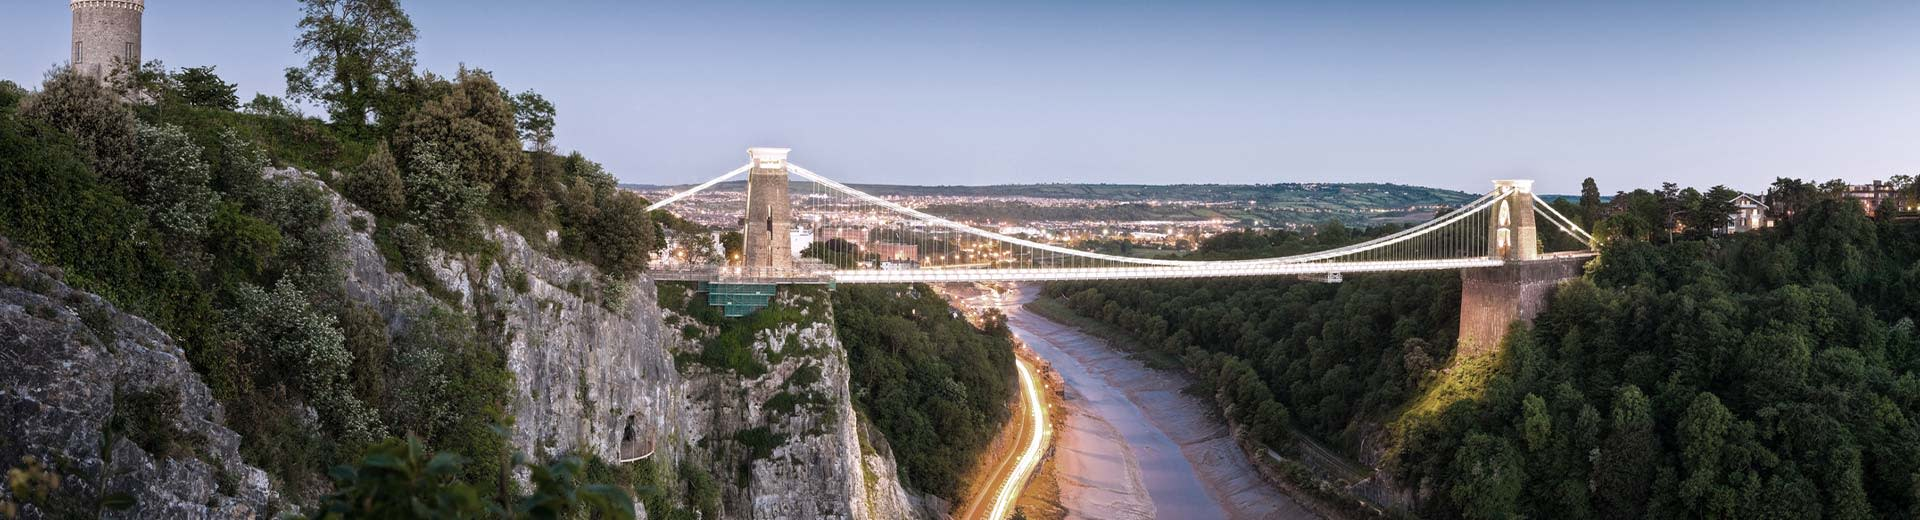 Greenery on a rock cliff to the left with a view of the Clifton Suspension Bridge in Bristol to the center right.